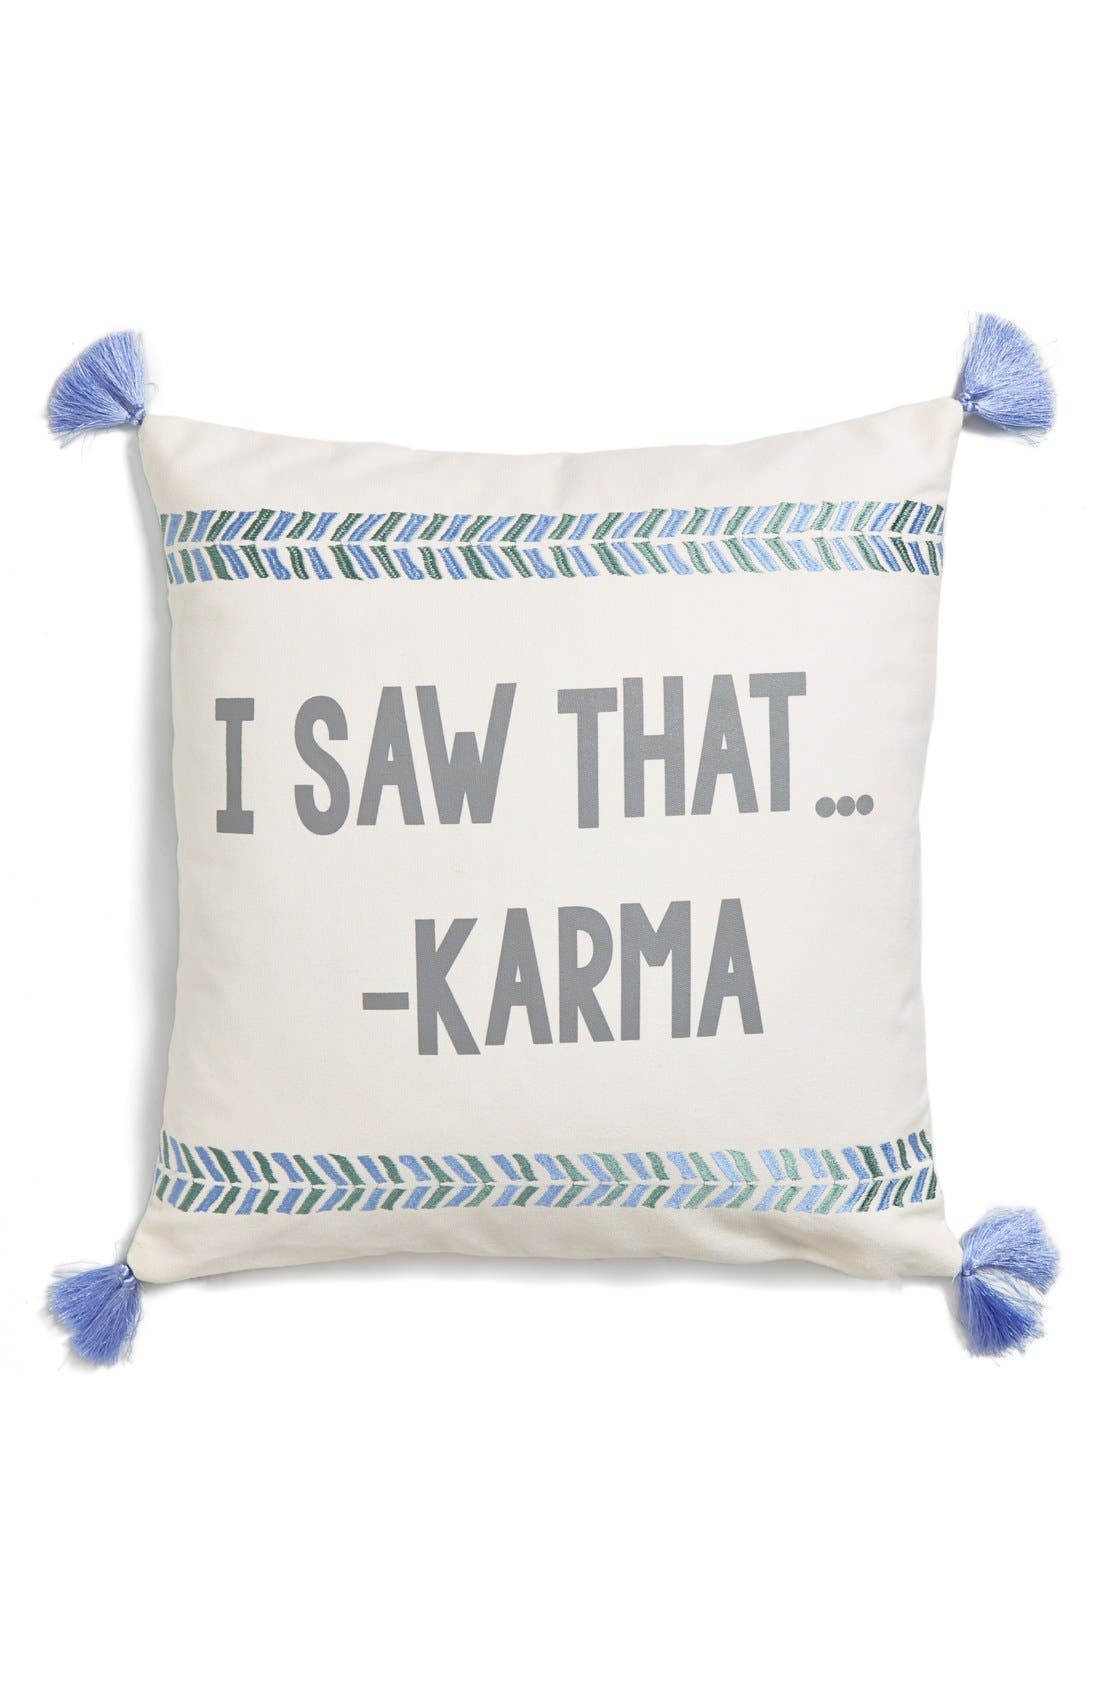 Alternate Image 1 Selected - Levtex 'I Saw That... -Karma' Pillow